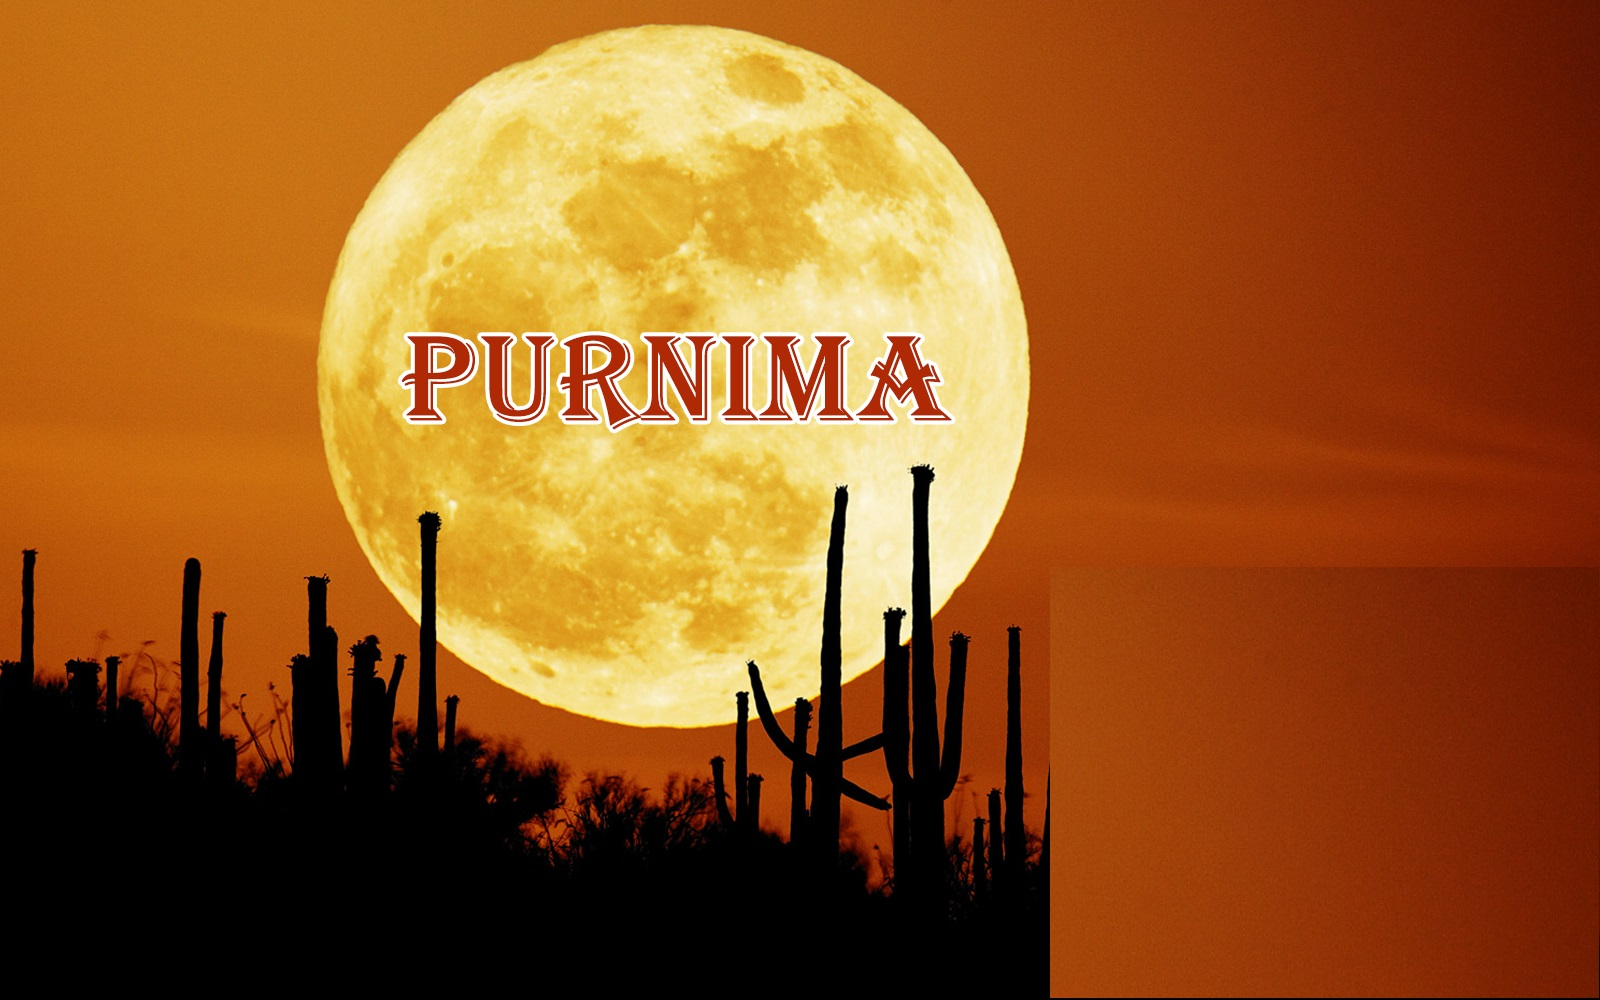 Guru purnima essay in english